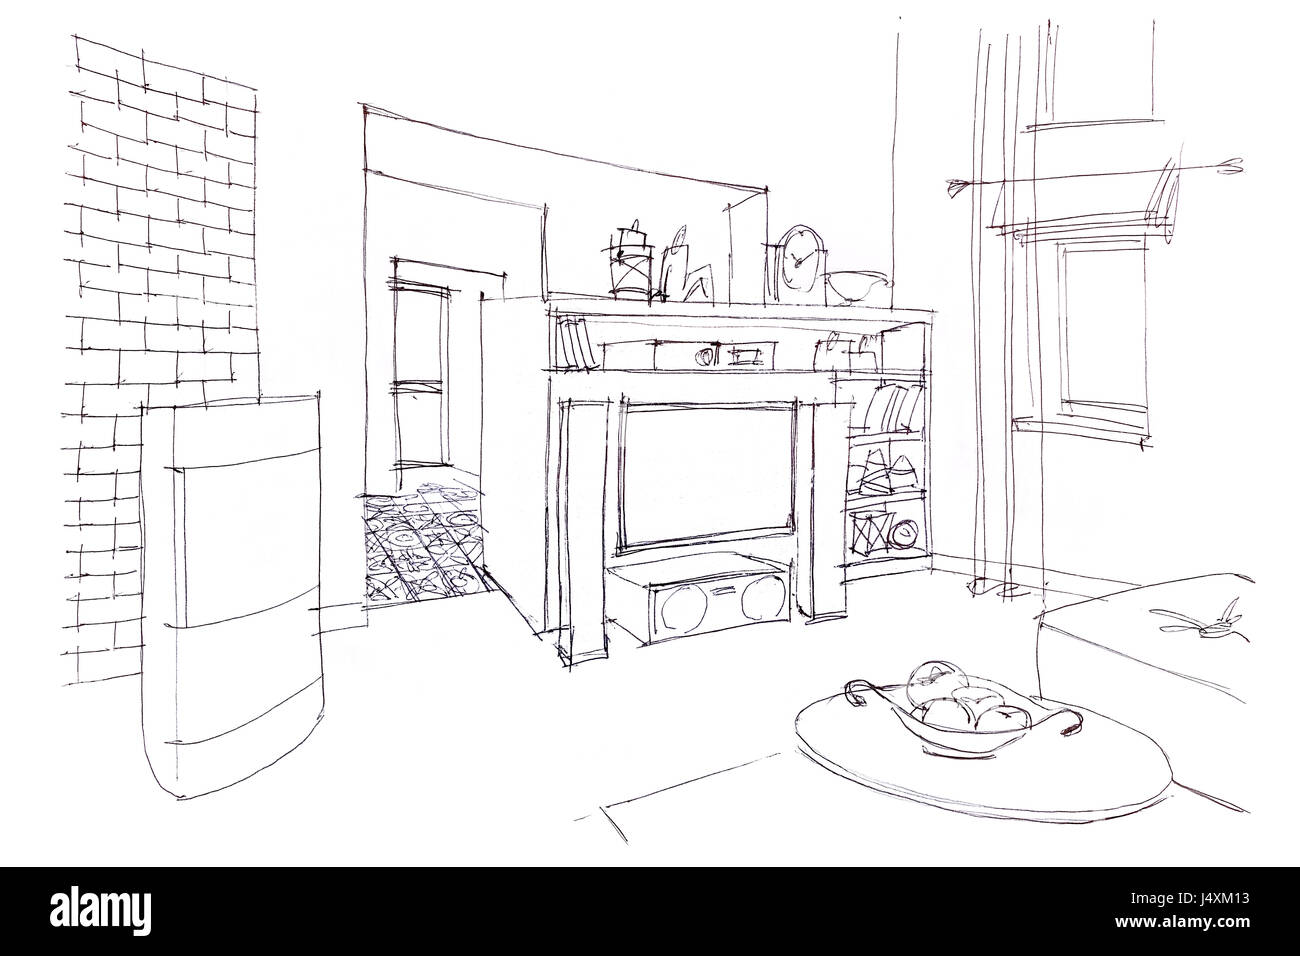 Modern Room Interior Graphical Sketch Of Living Room With Furniture